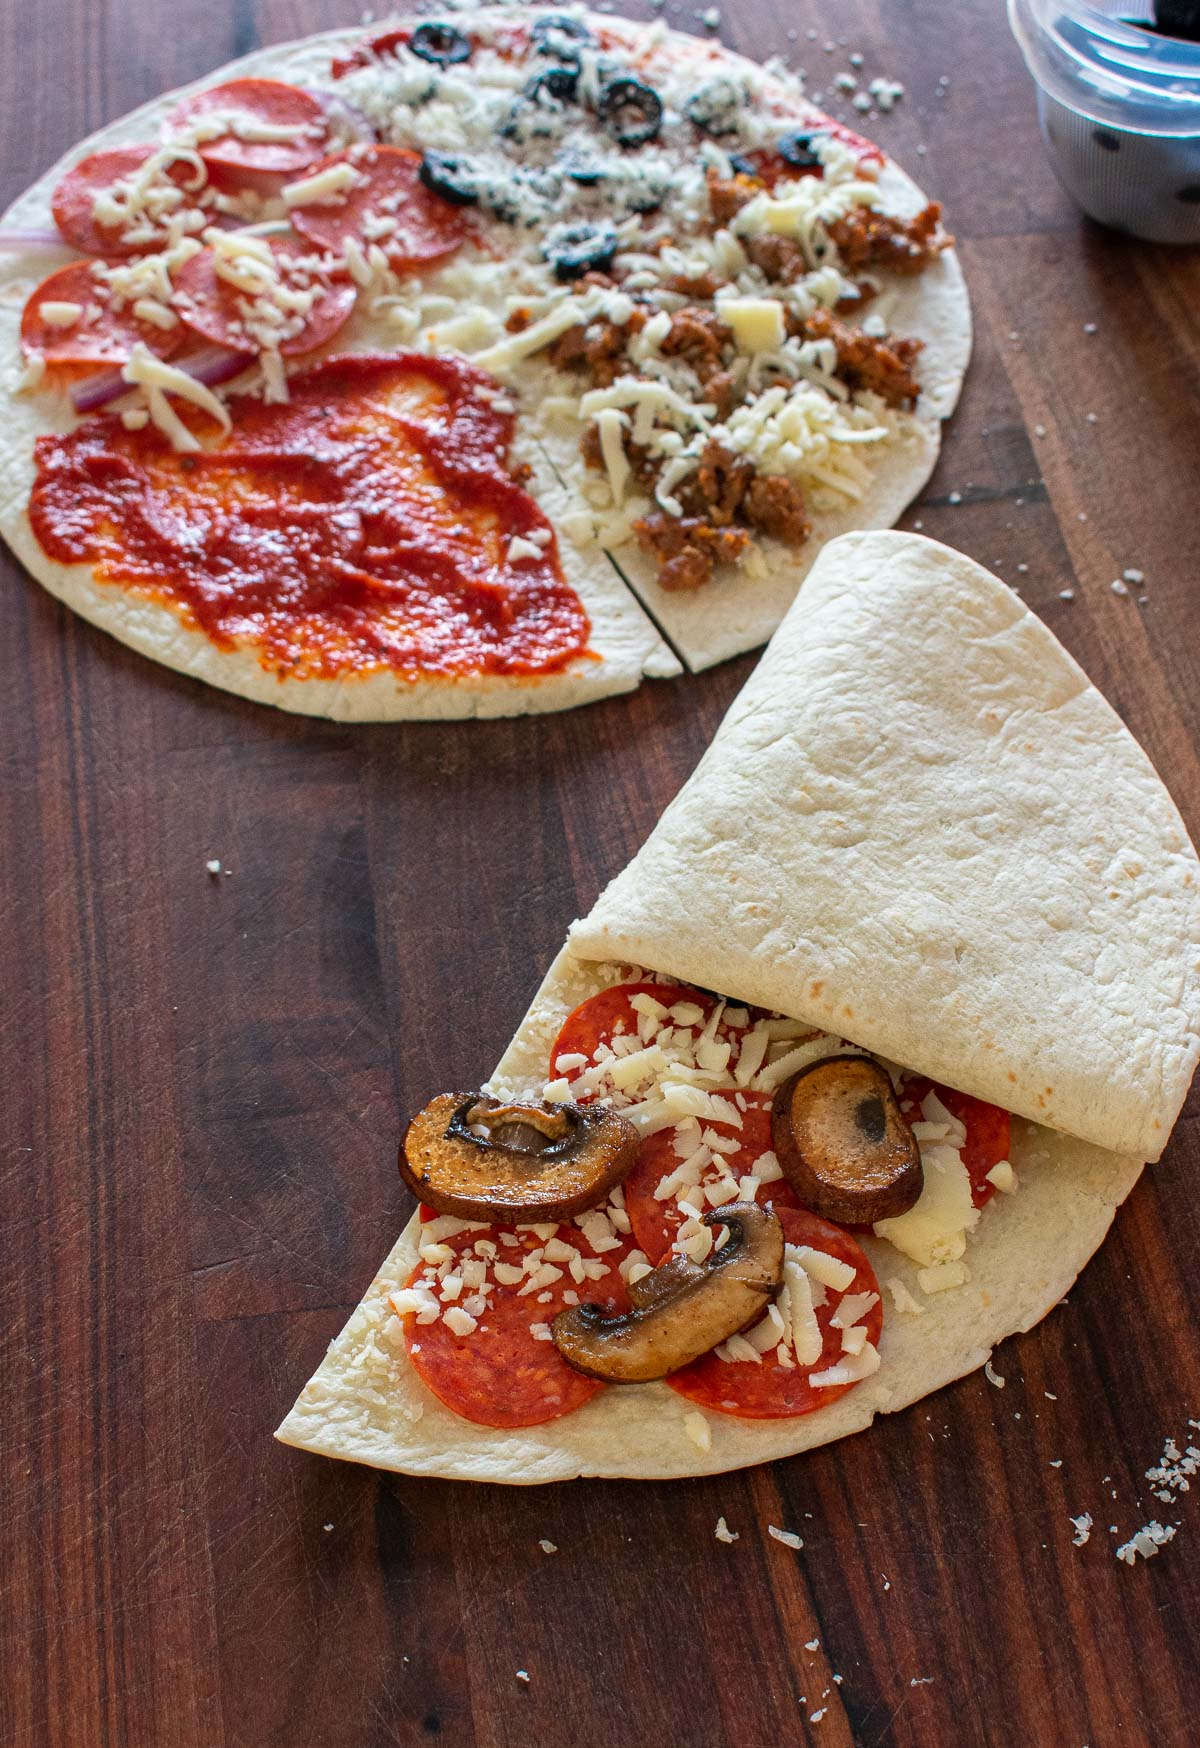 tortilla wrap pizza being folded